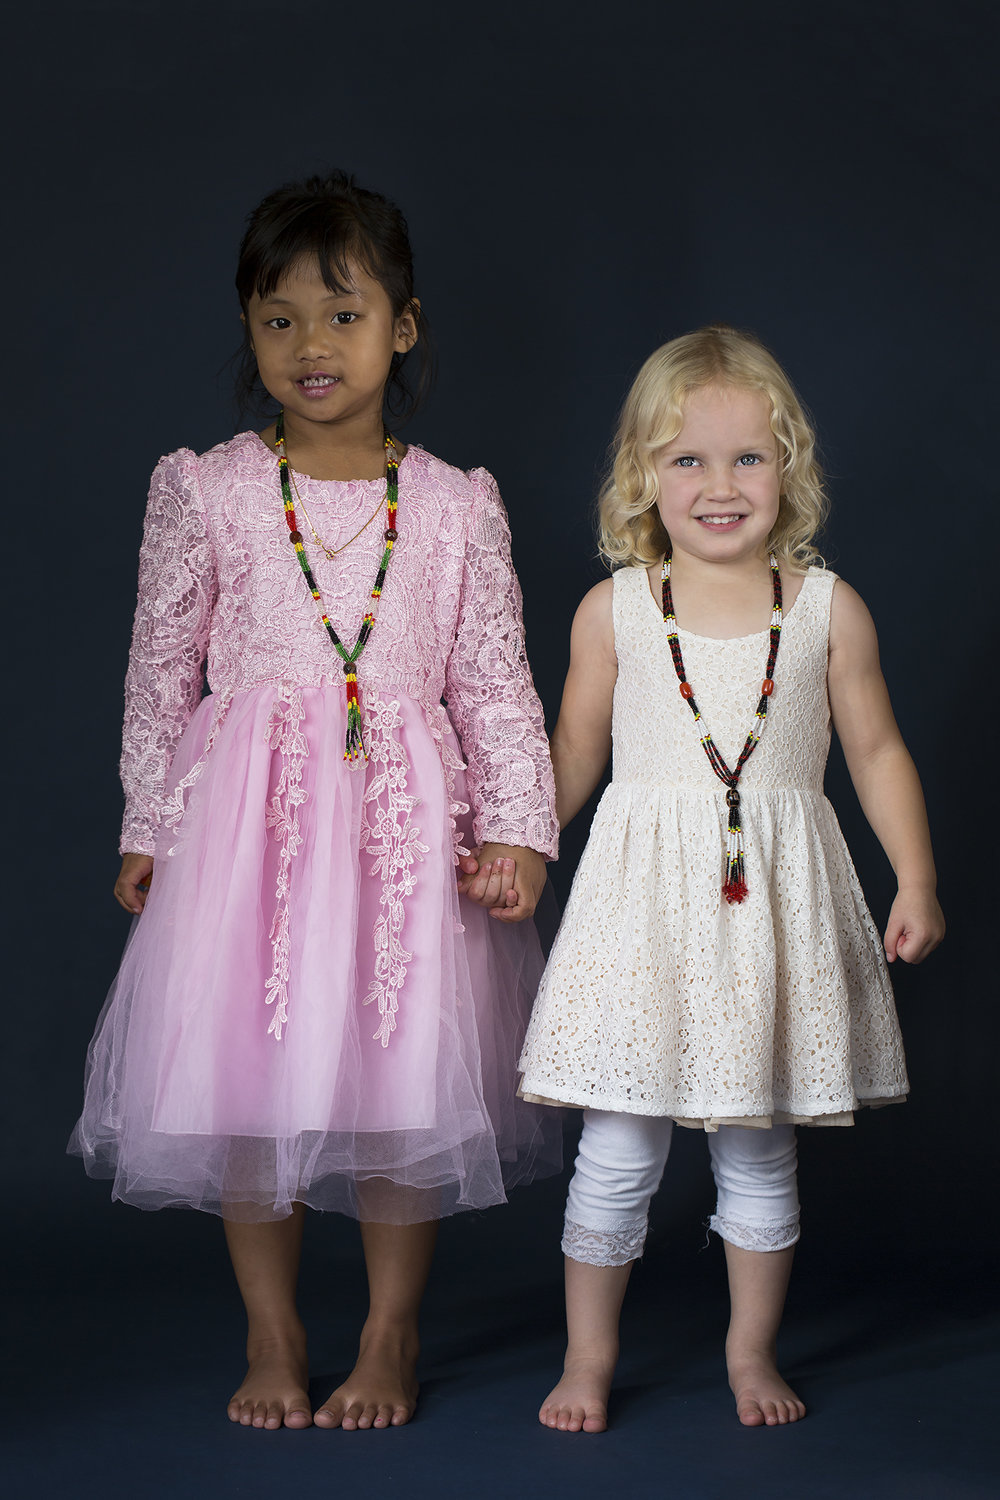 Blessing - Myanmar and Amelia - New Zealand